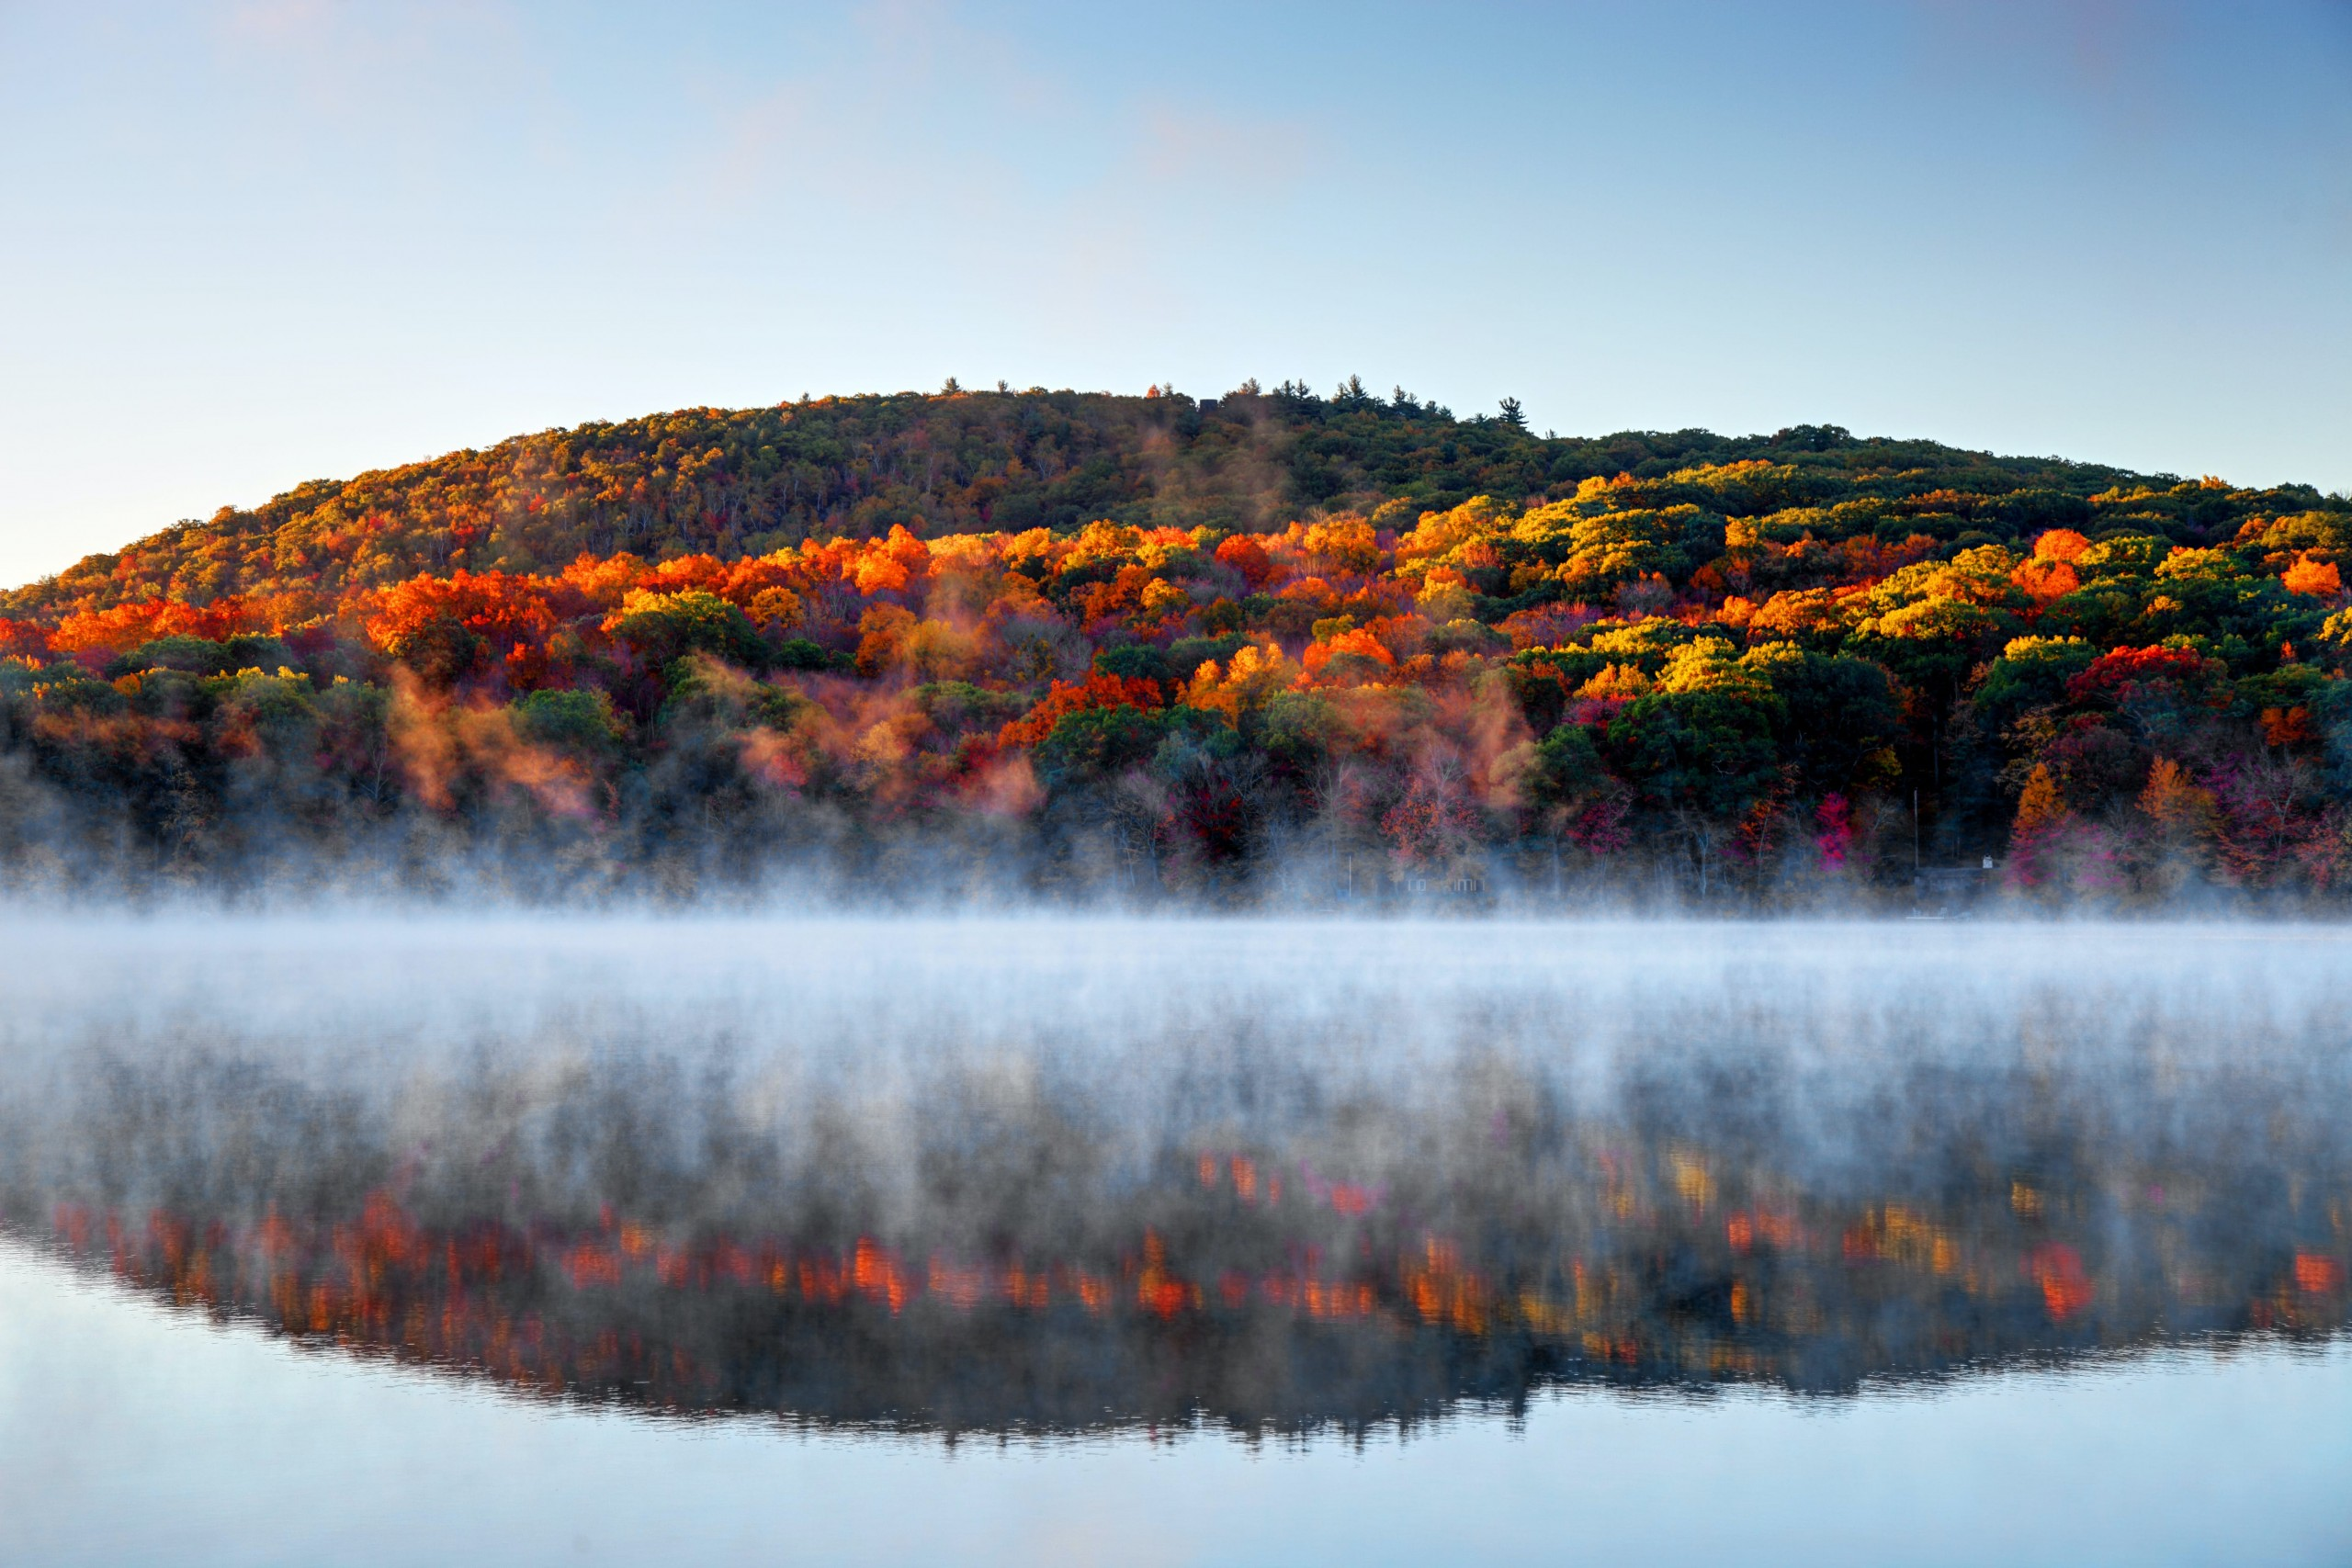 mist clings to the surface of a lake in Connecticut as red, orange, yellow and green leaves are reflected in its surface from a hill behind. New England fall foliage road trip